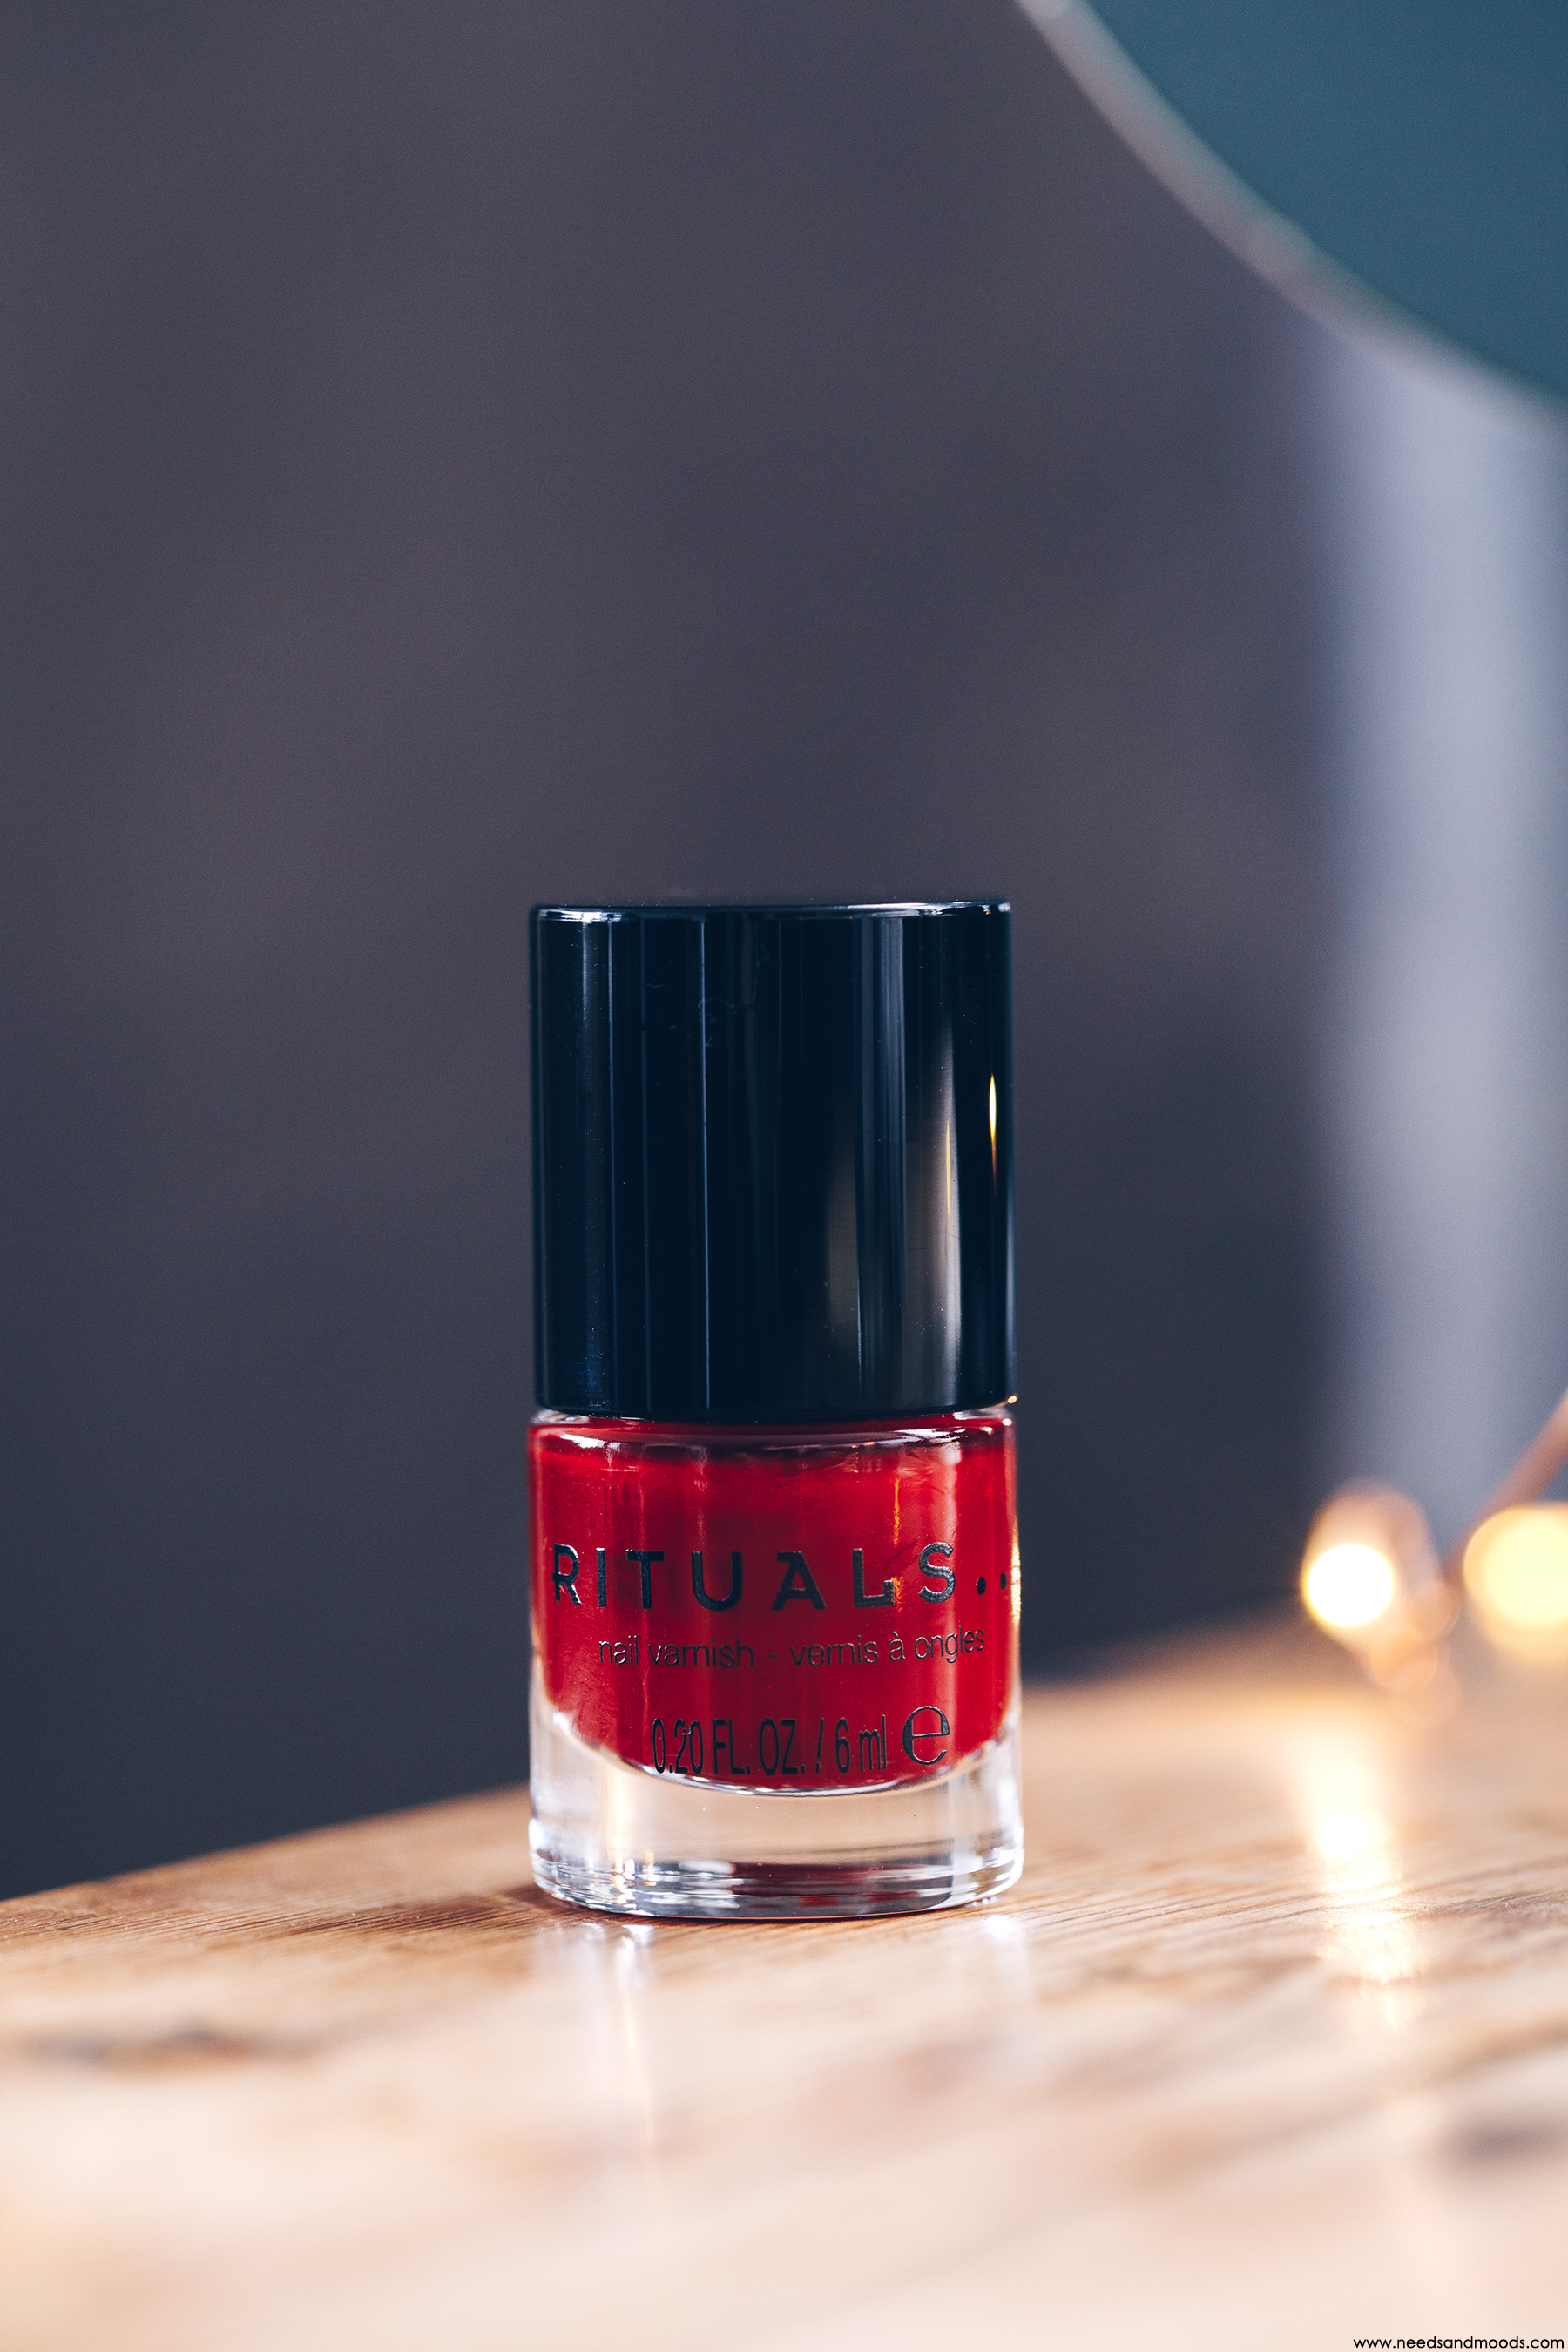 calendrier avent rituals vernis a ongles